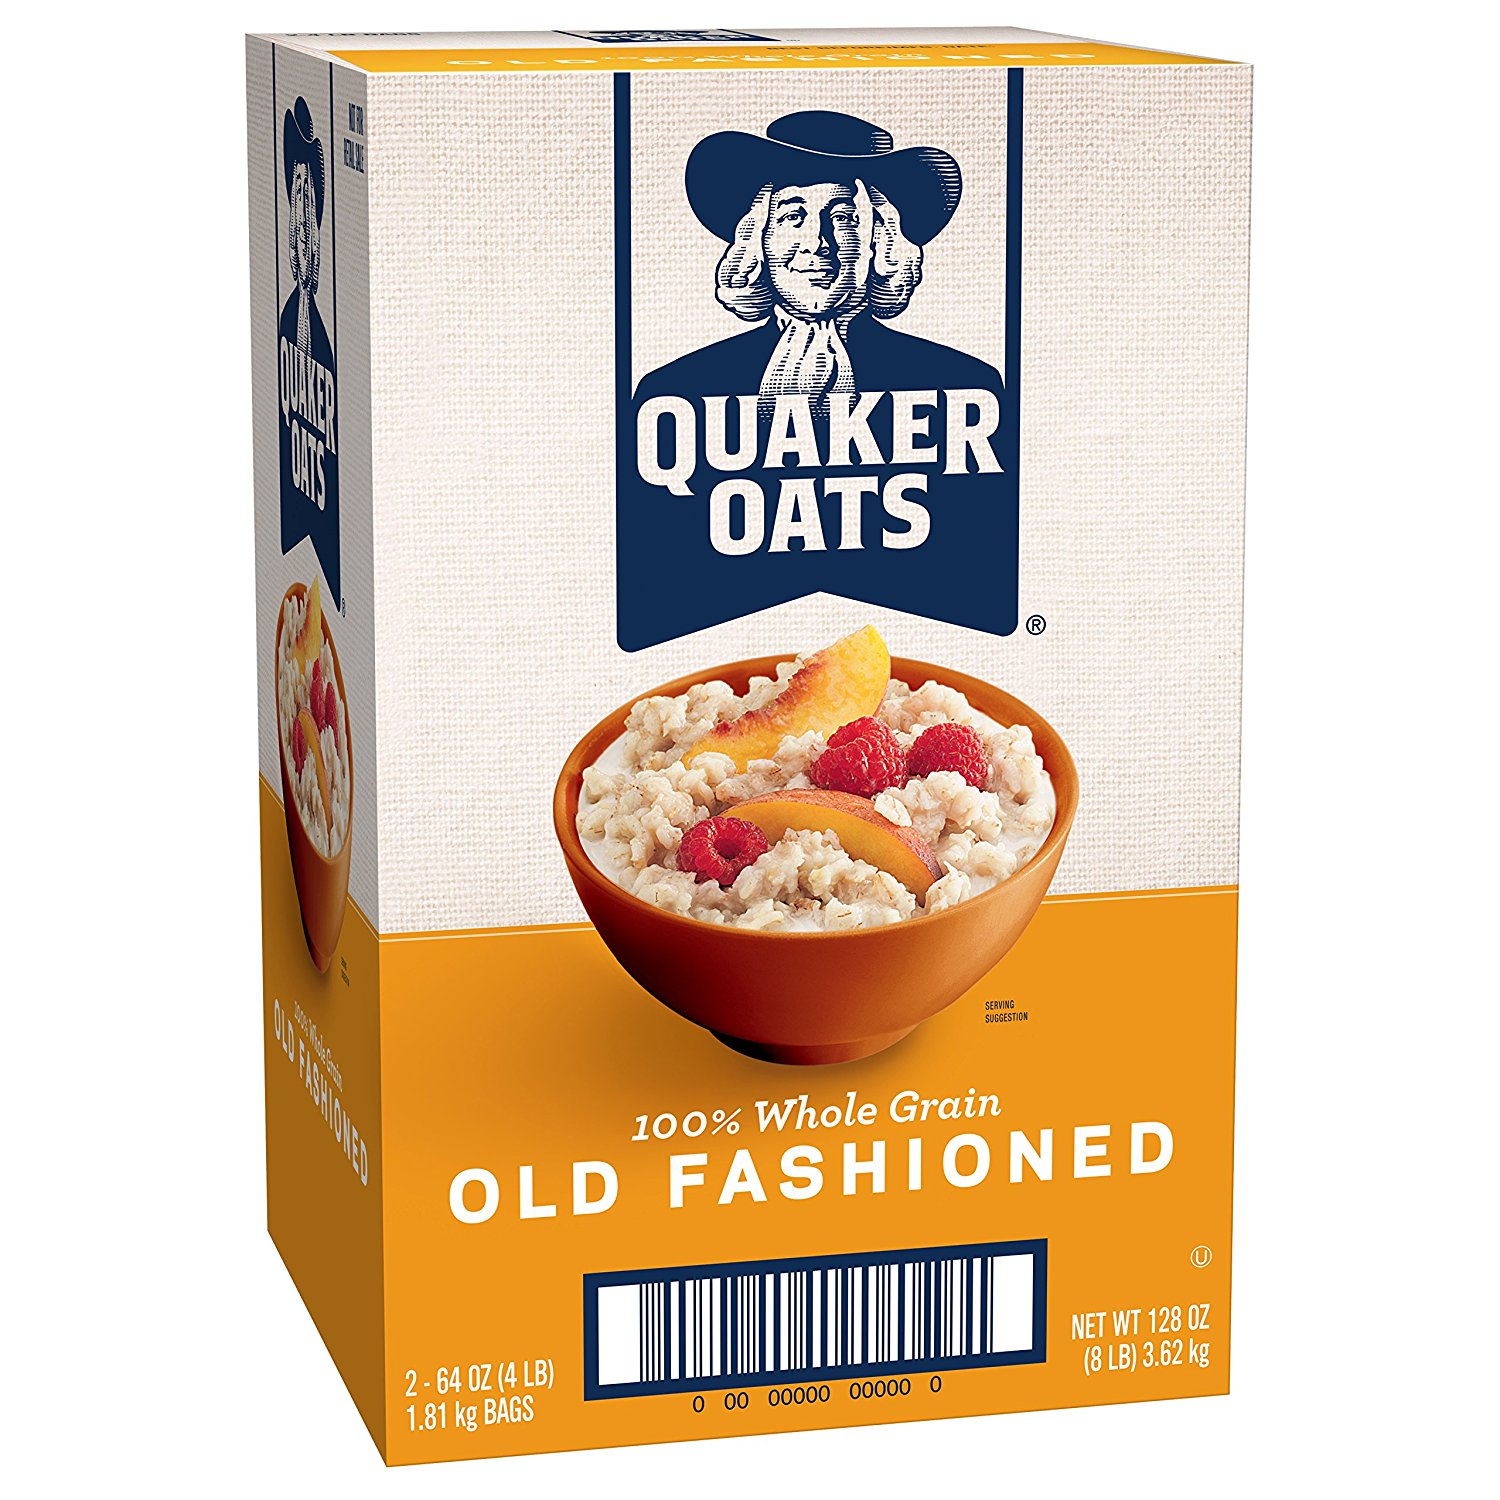 Quaker Old Fashioned Oats, 64 oz Bags, 2 Count